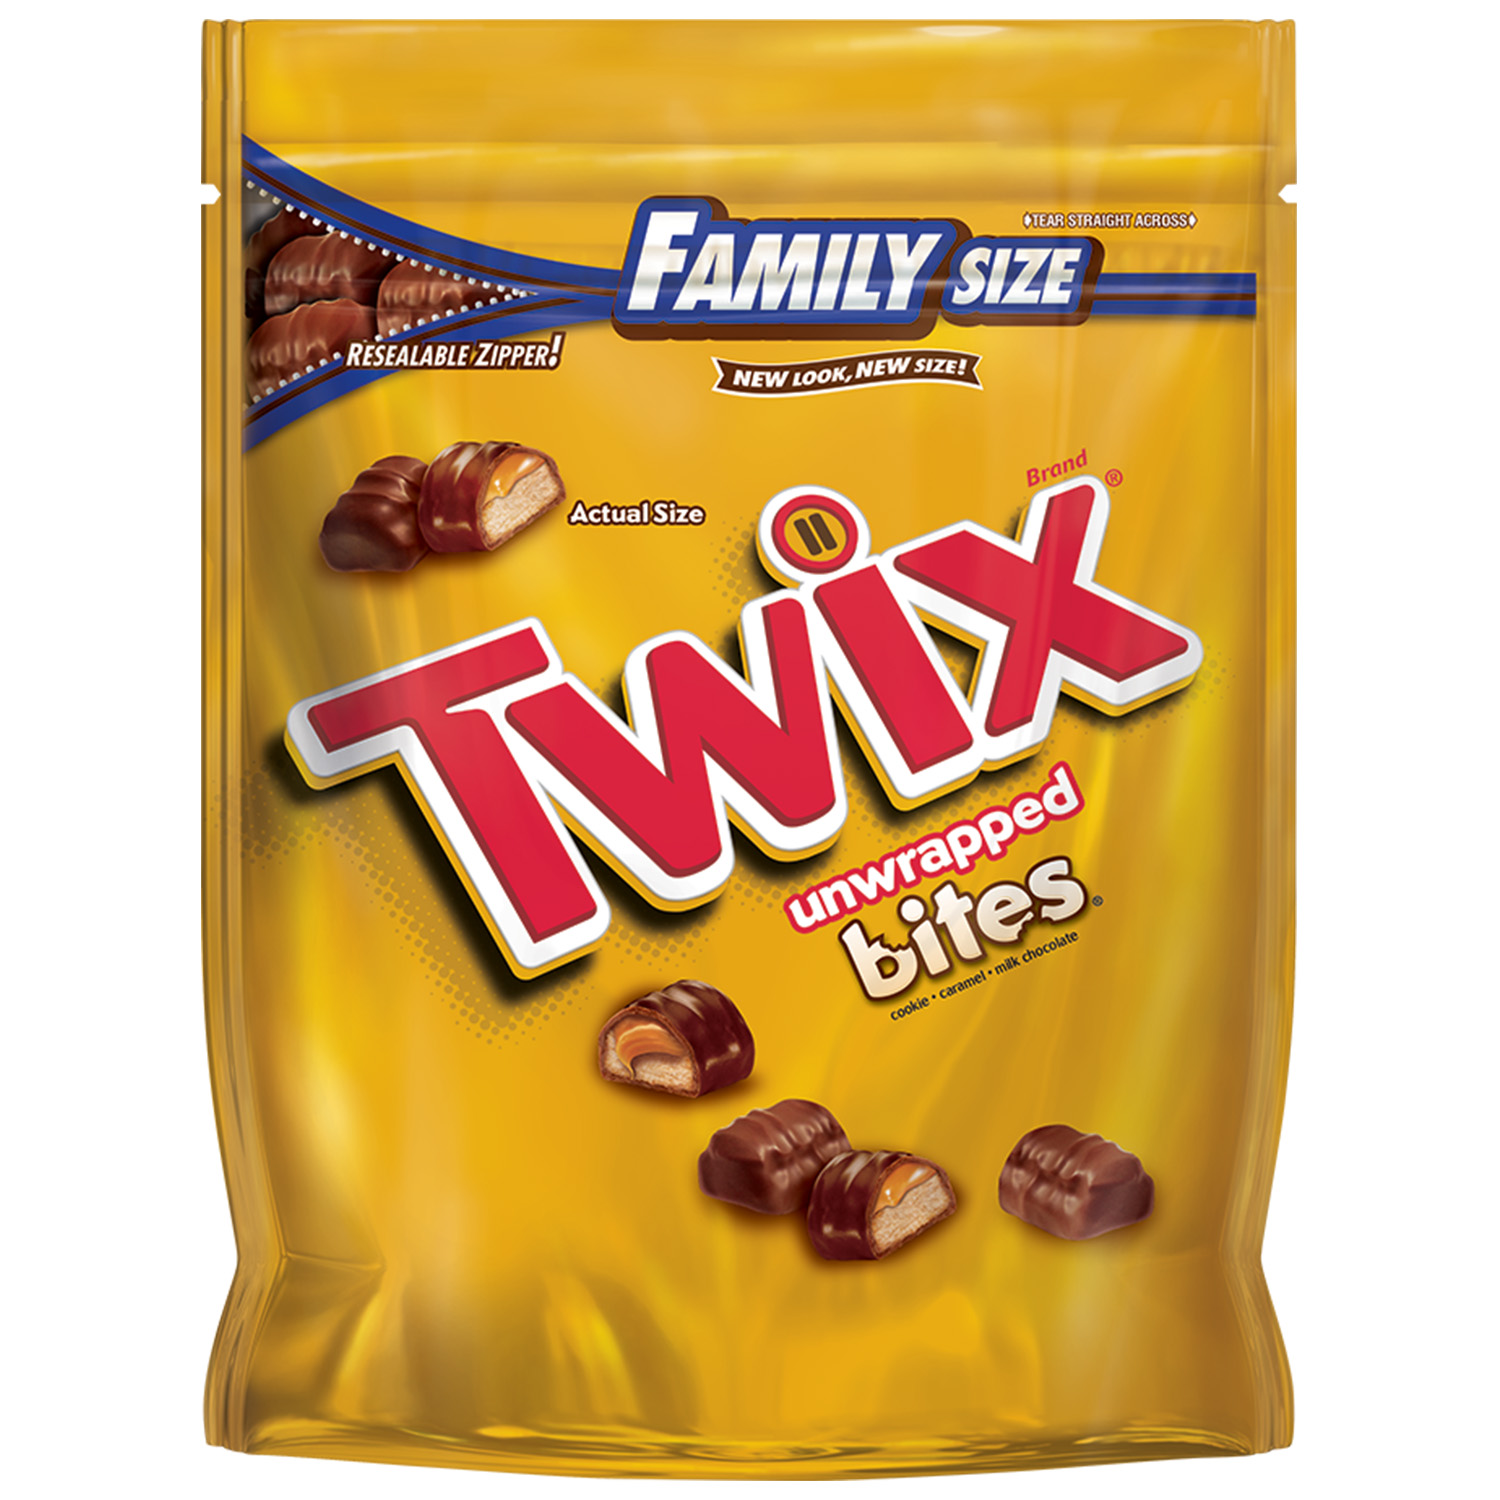 TWIX Caramel Bites Size Chocolate Cookie Bar Candy Family Size Pouch, 14.8 oz